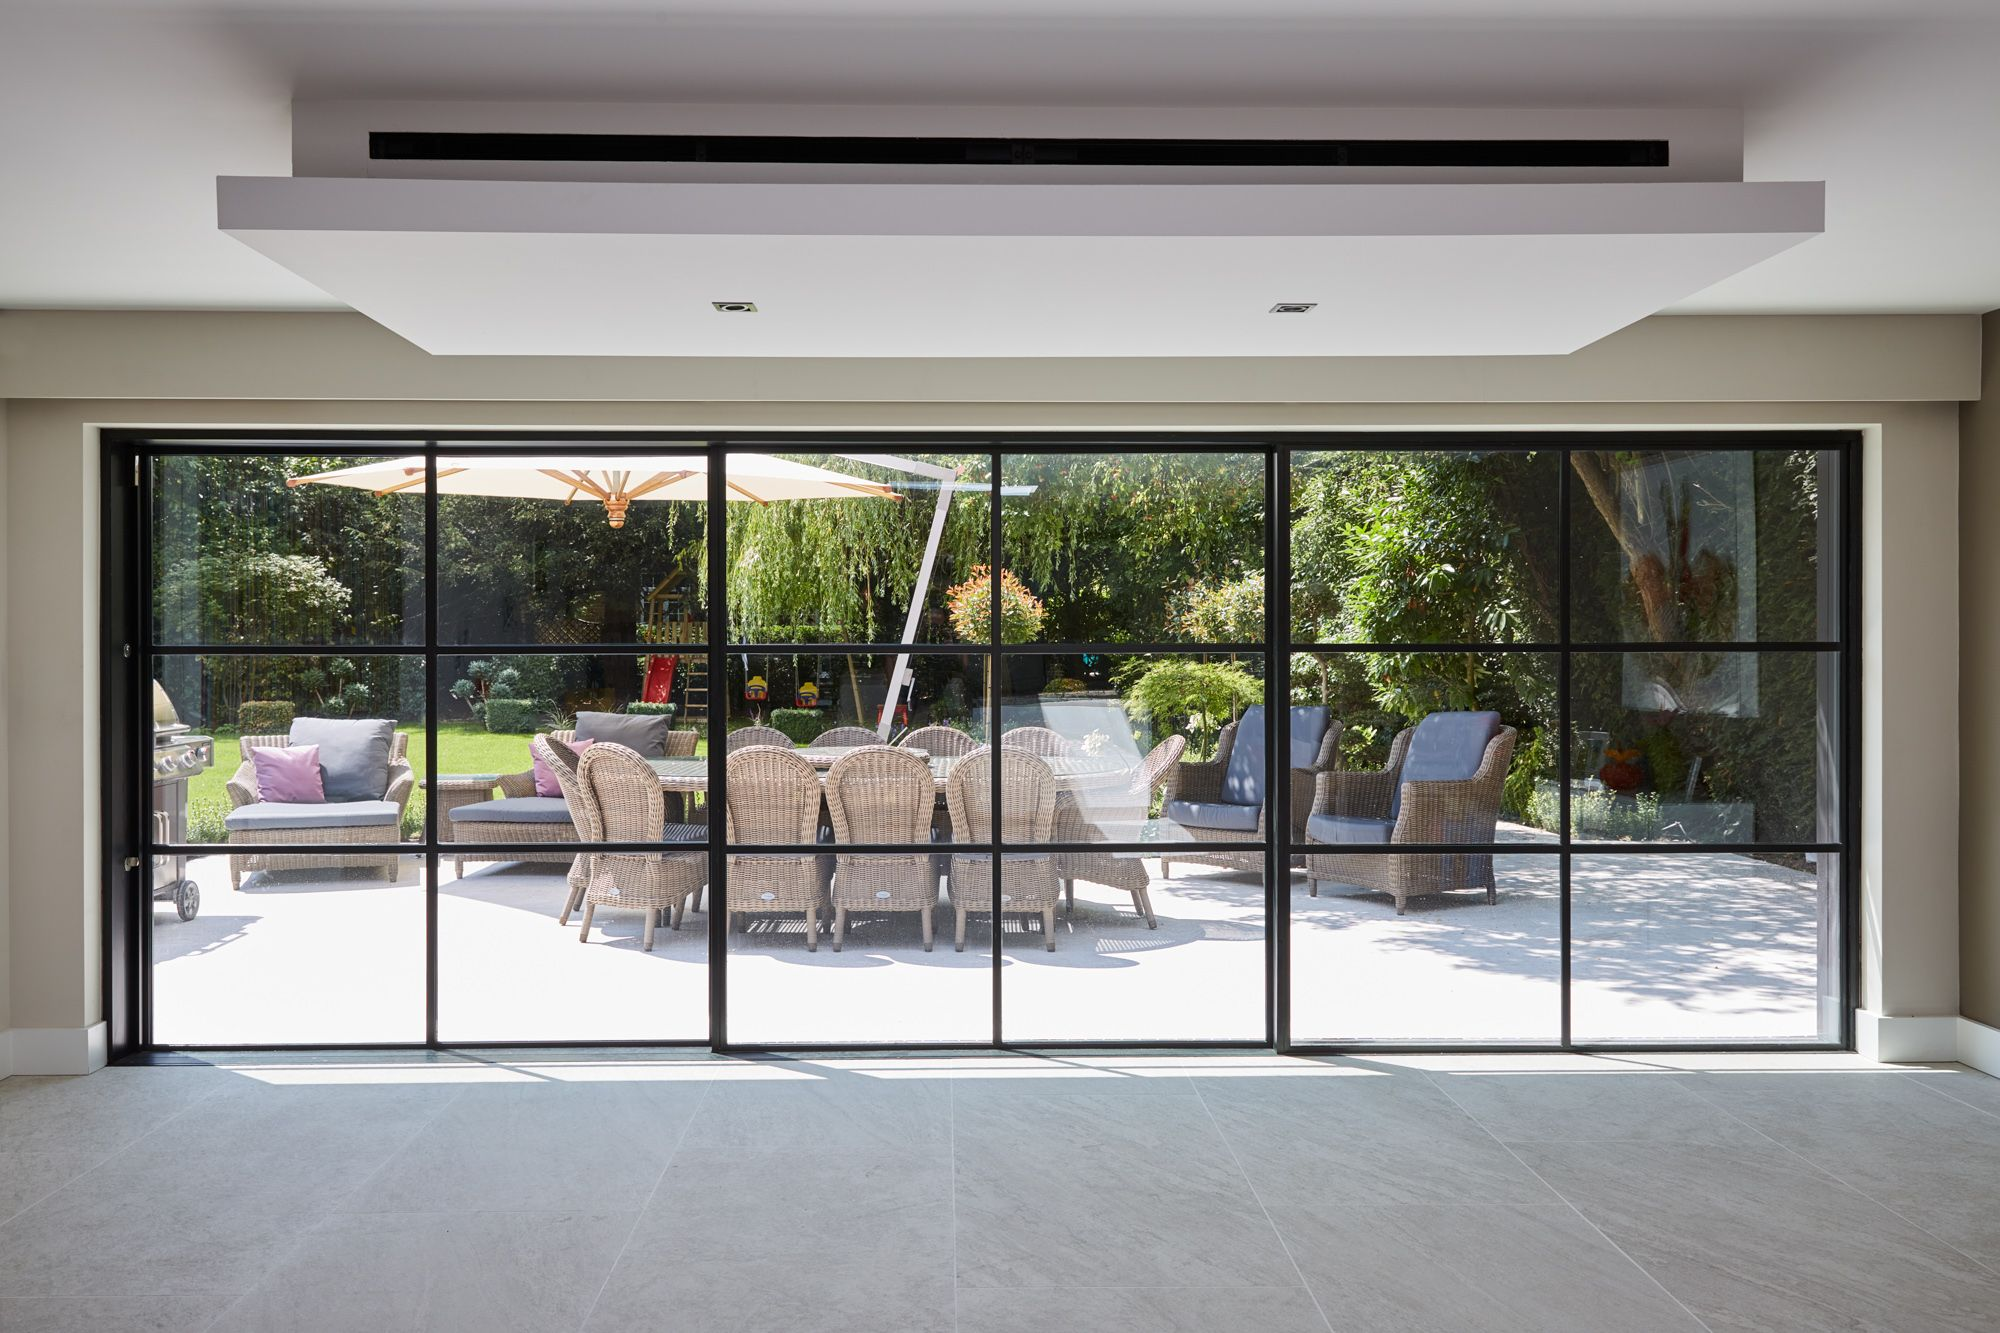 Internal Shot Of Triple Track Minimal Frame Sliding Doors In The Closed Position With Crittal Style Steel F External Sliding Doors External Doors Sliding Doors